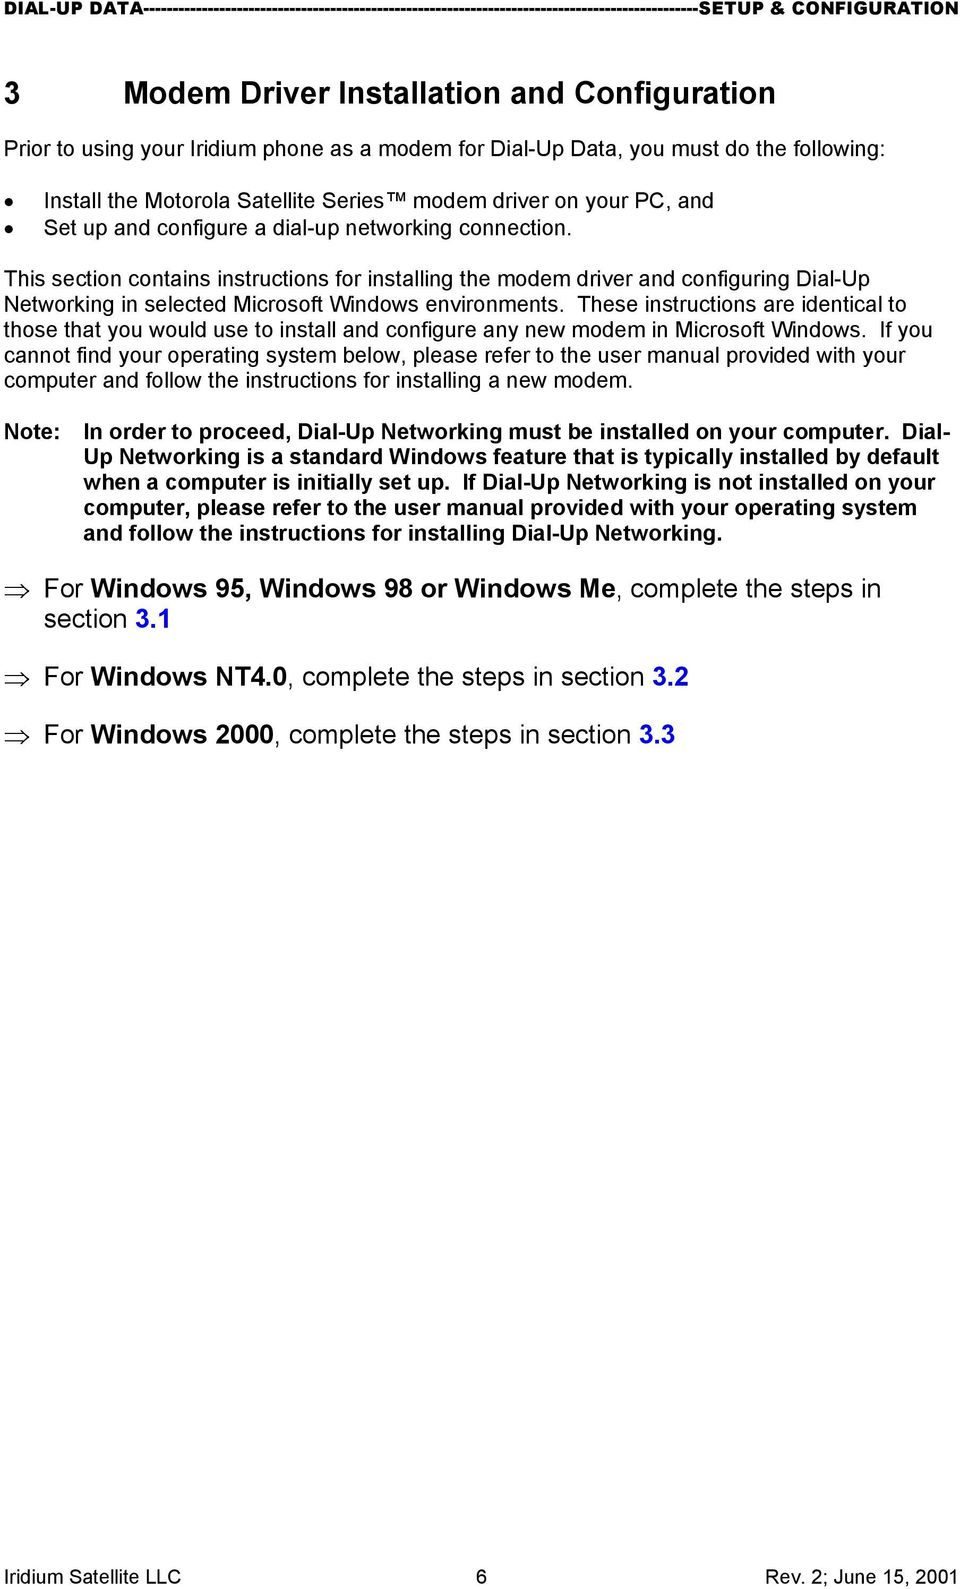 This section contains instructions for installing the modem driver and configuring Dial-Up Networking in selected Microsoft Windows environments.